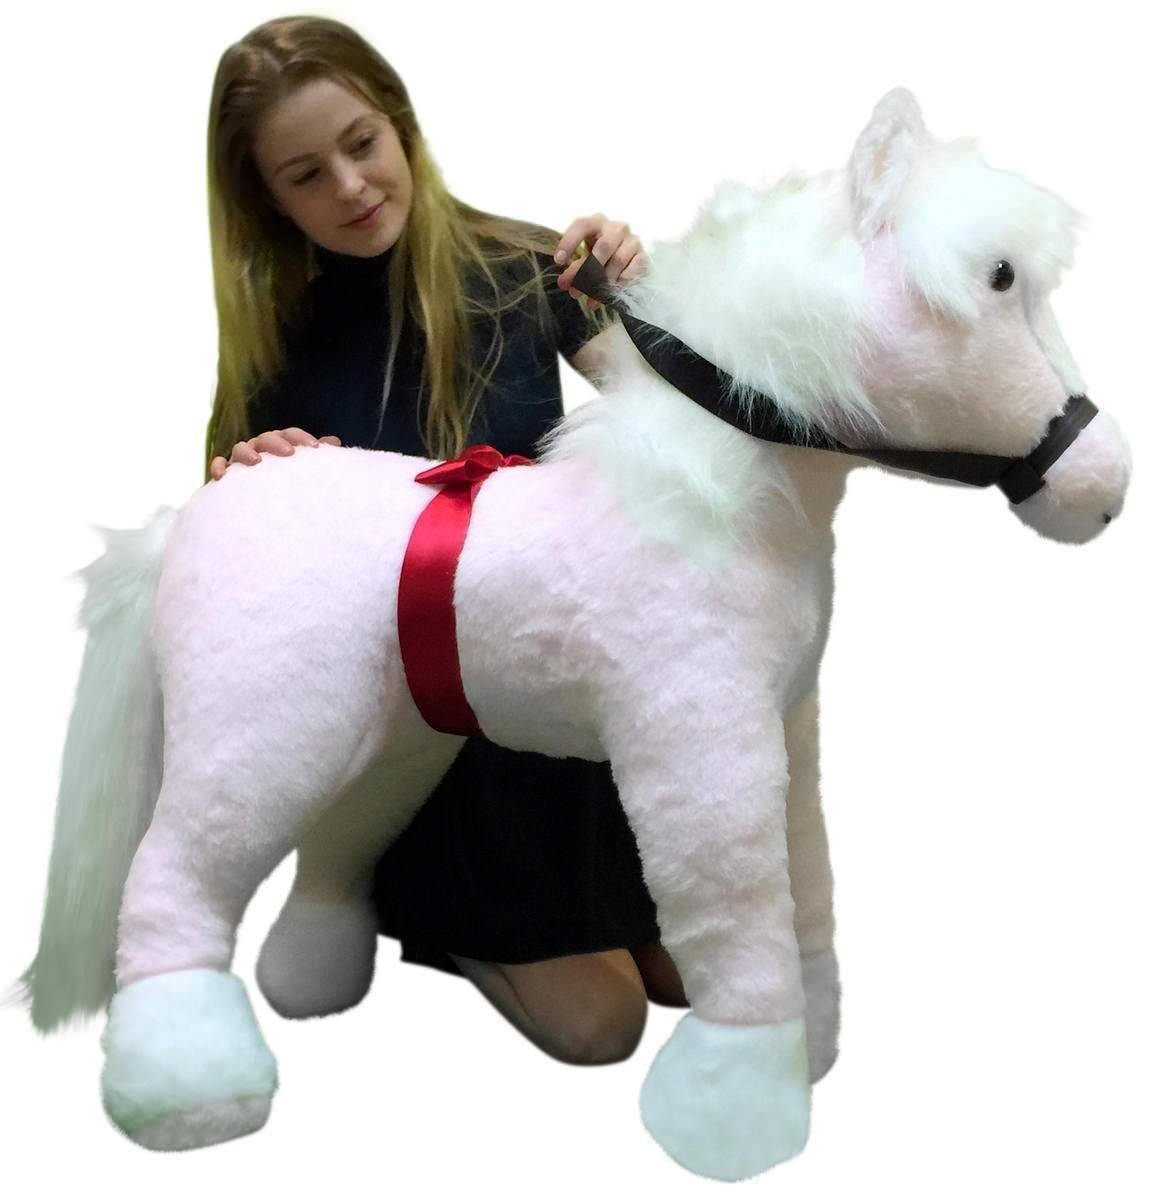 Cheap Large Stuffed Horse Find Large Stuffed Horse Deals On Line At